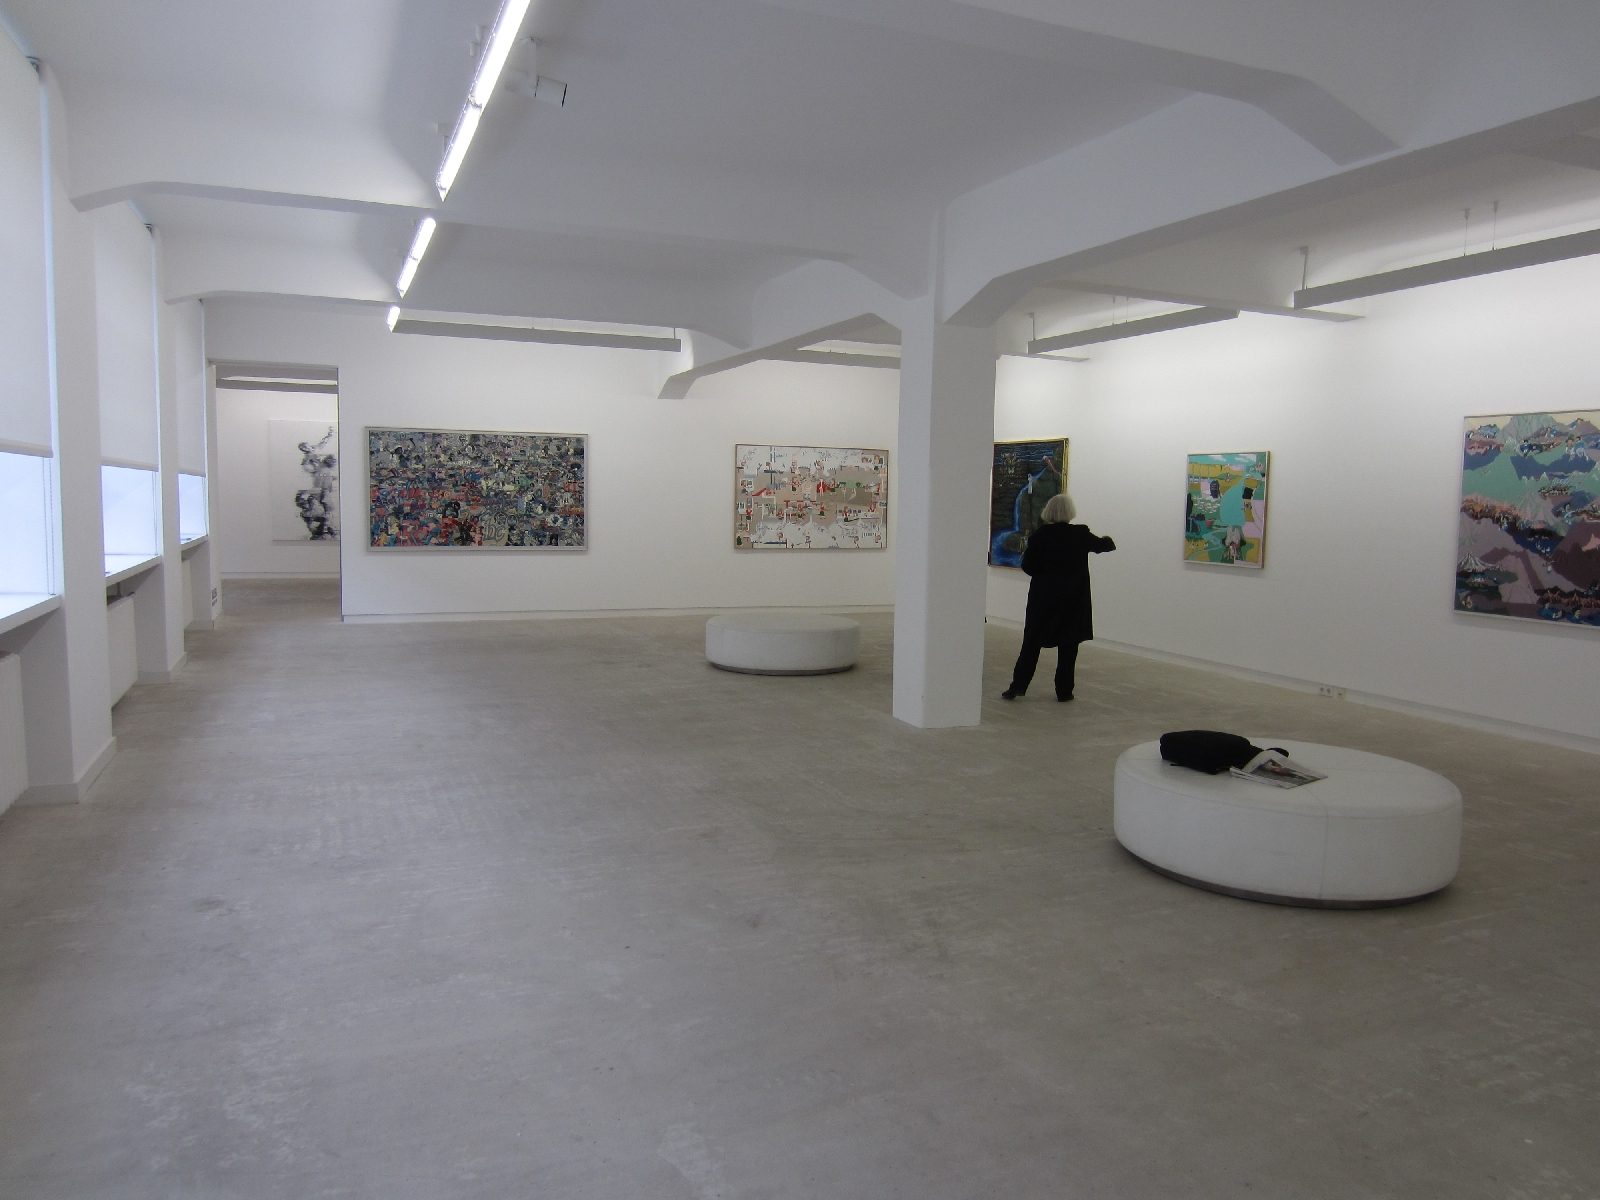 Berlin Gallery Weekend 2012 - klaus liebig @ michael jansen